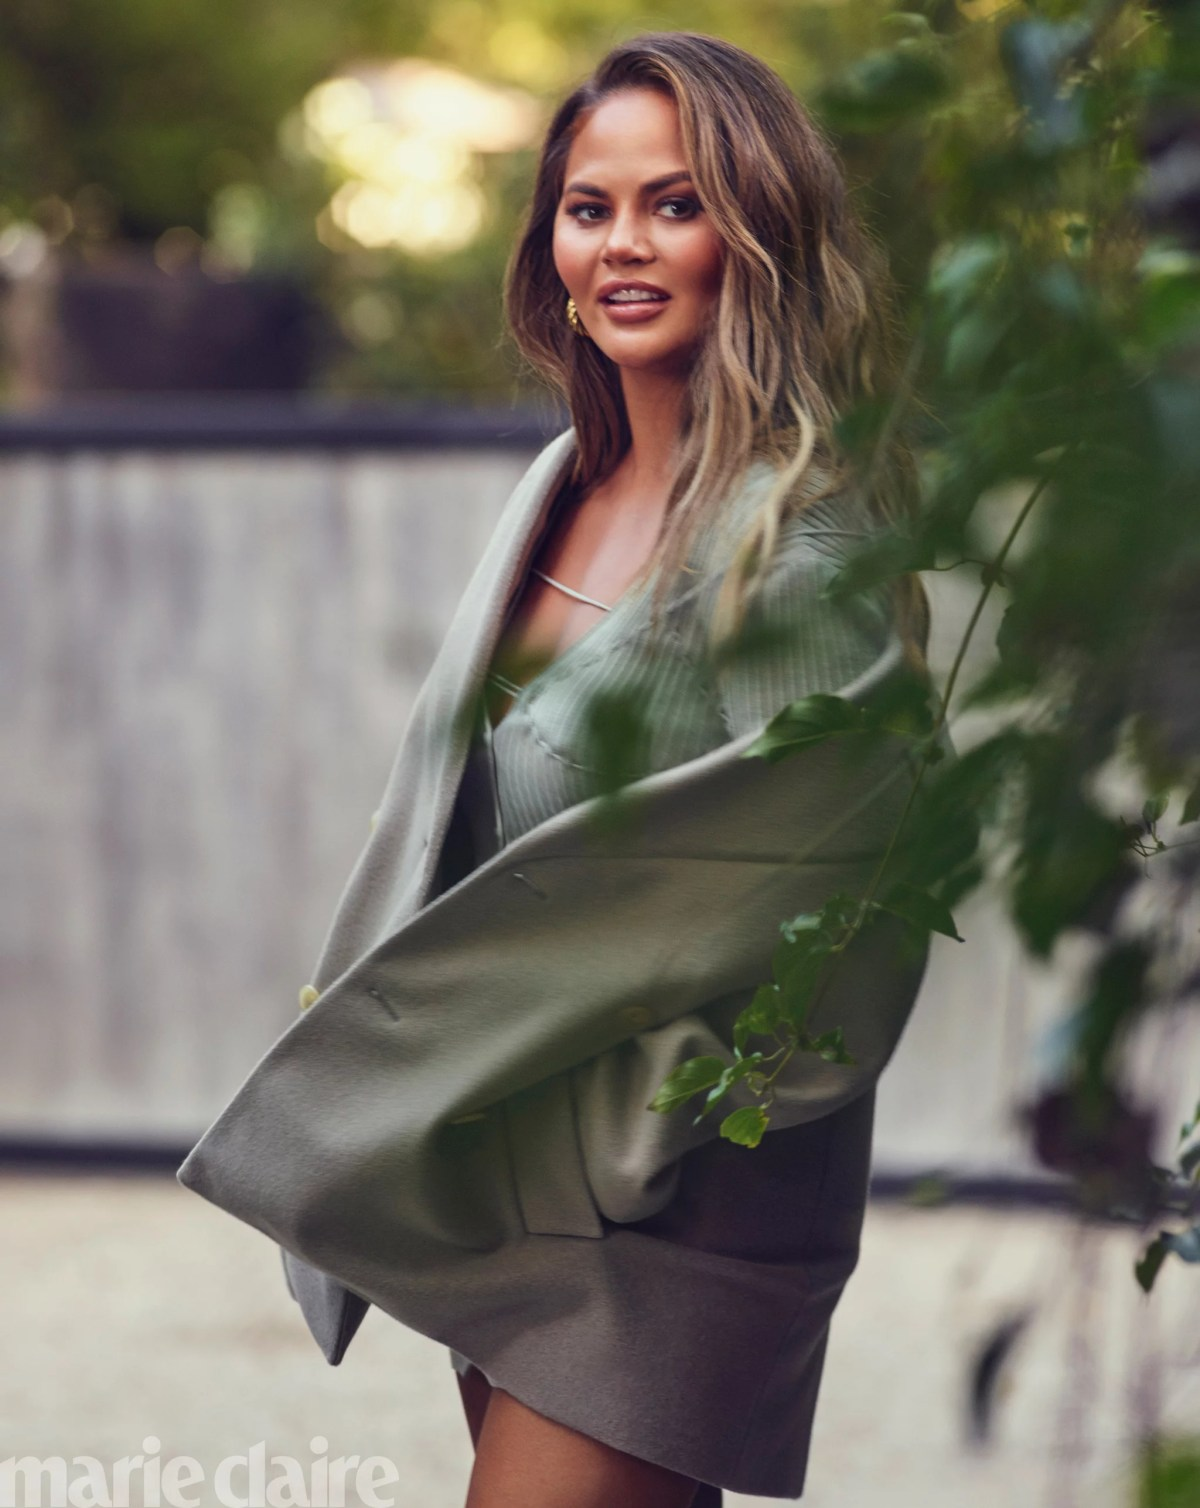 Chrissy Teigen Quotes in Marie Claire Fall 2020 | POPSUGAR Celebrity